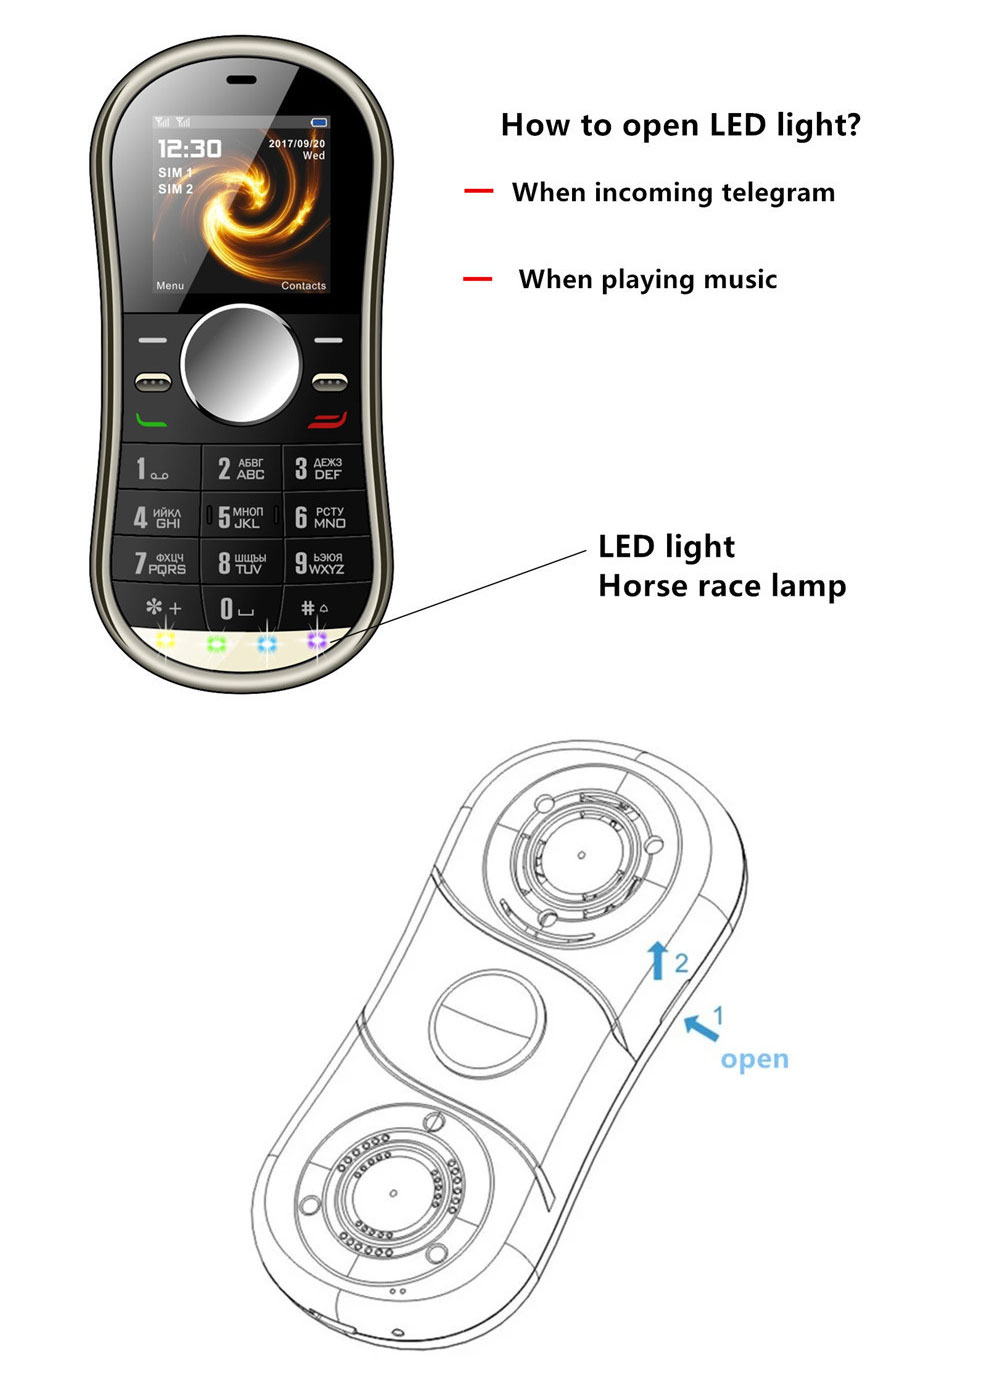 Multifunction Mini Phone Gyro Spinner Mobile Dual SIM Card GSM 900 1800 GPRS Bluetooth FM Radio Hand Spinner Cellphone With English Keyboard 2